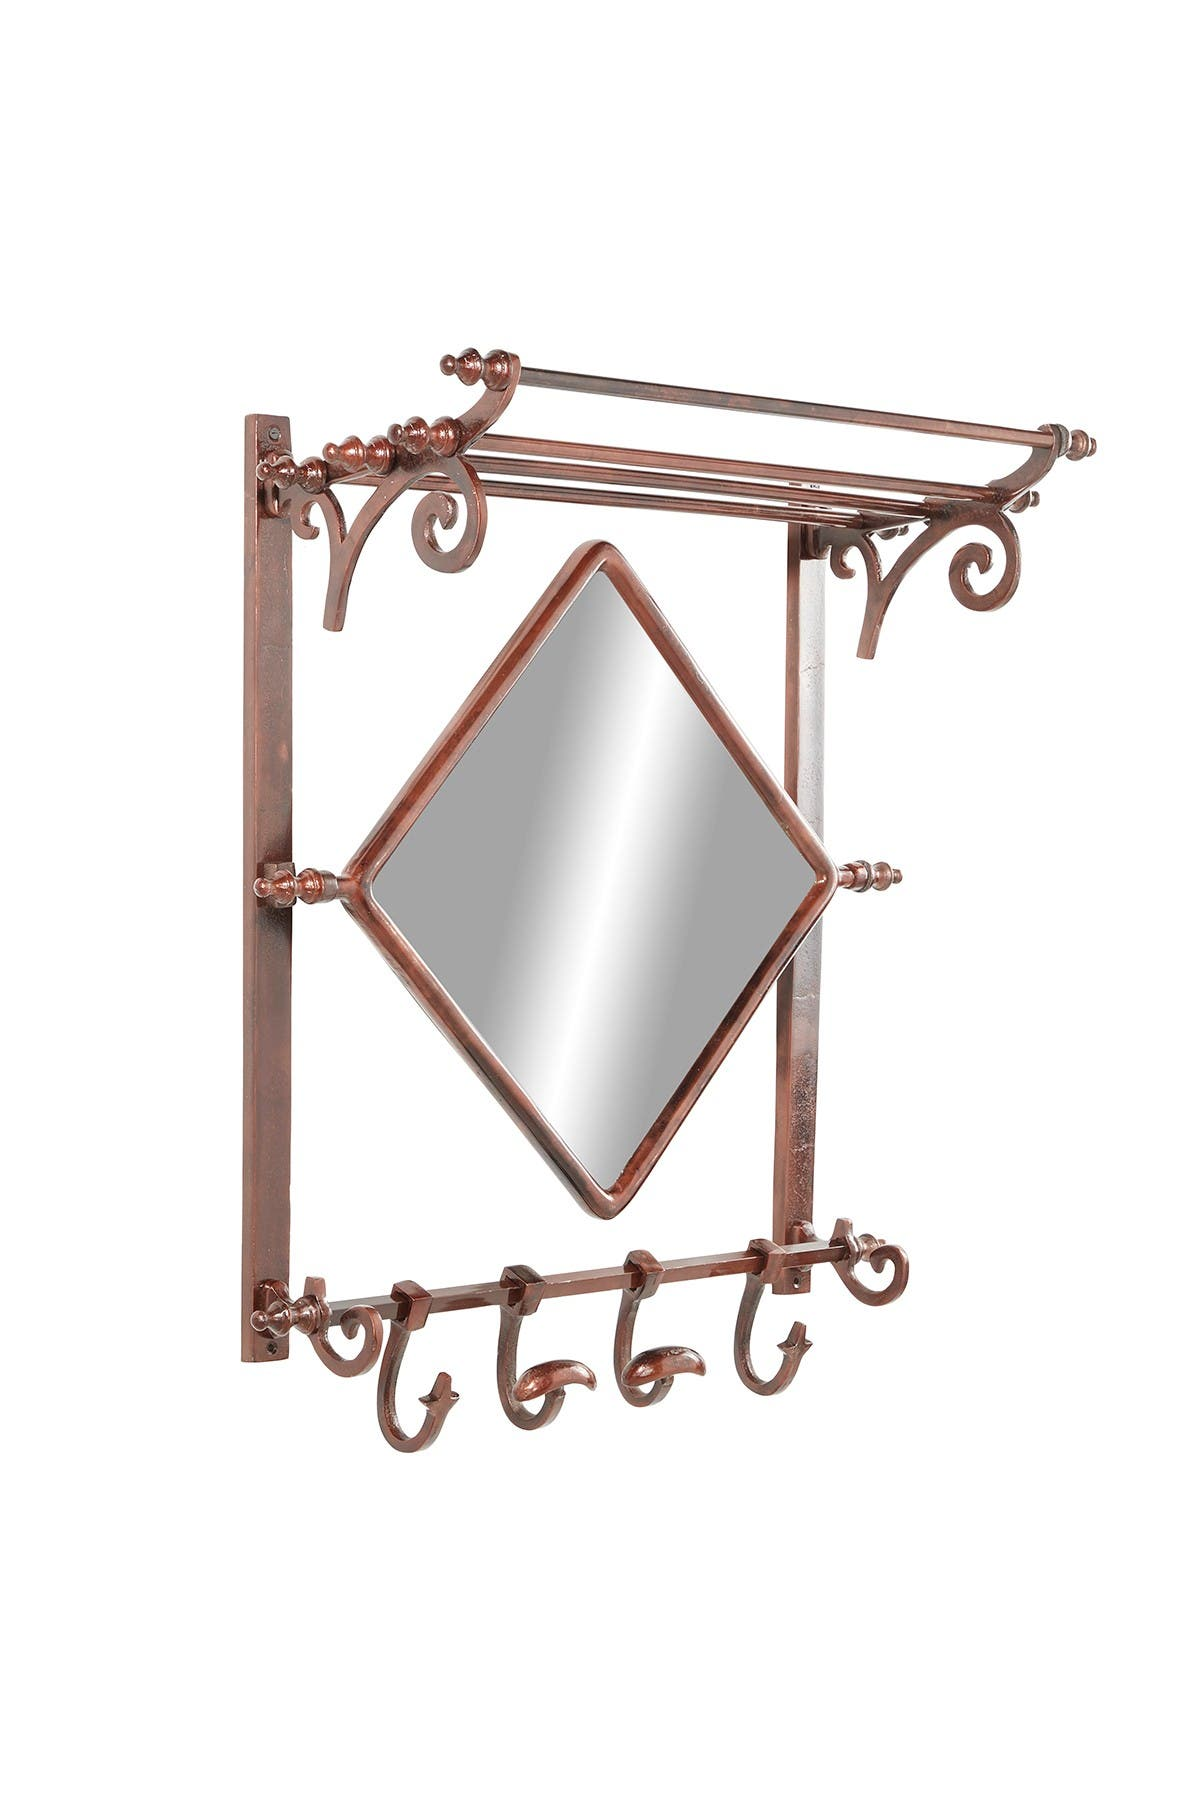 "Image of Willow Row Copper Bathroom Wall Rack with Hooks and Mirror - 25"" x 28"""